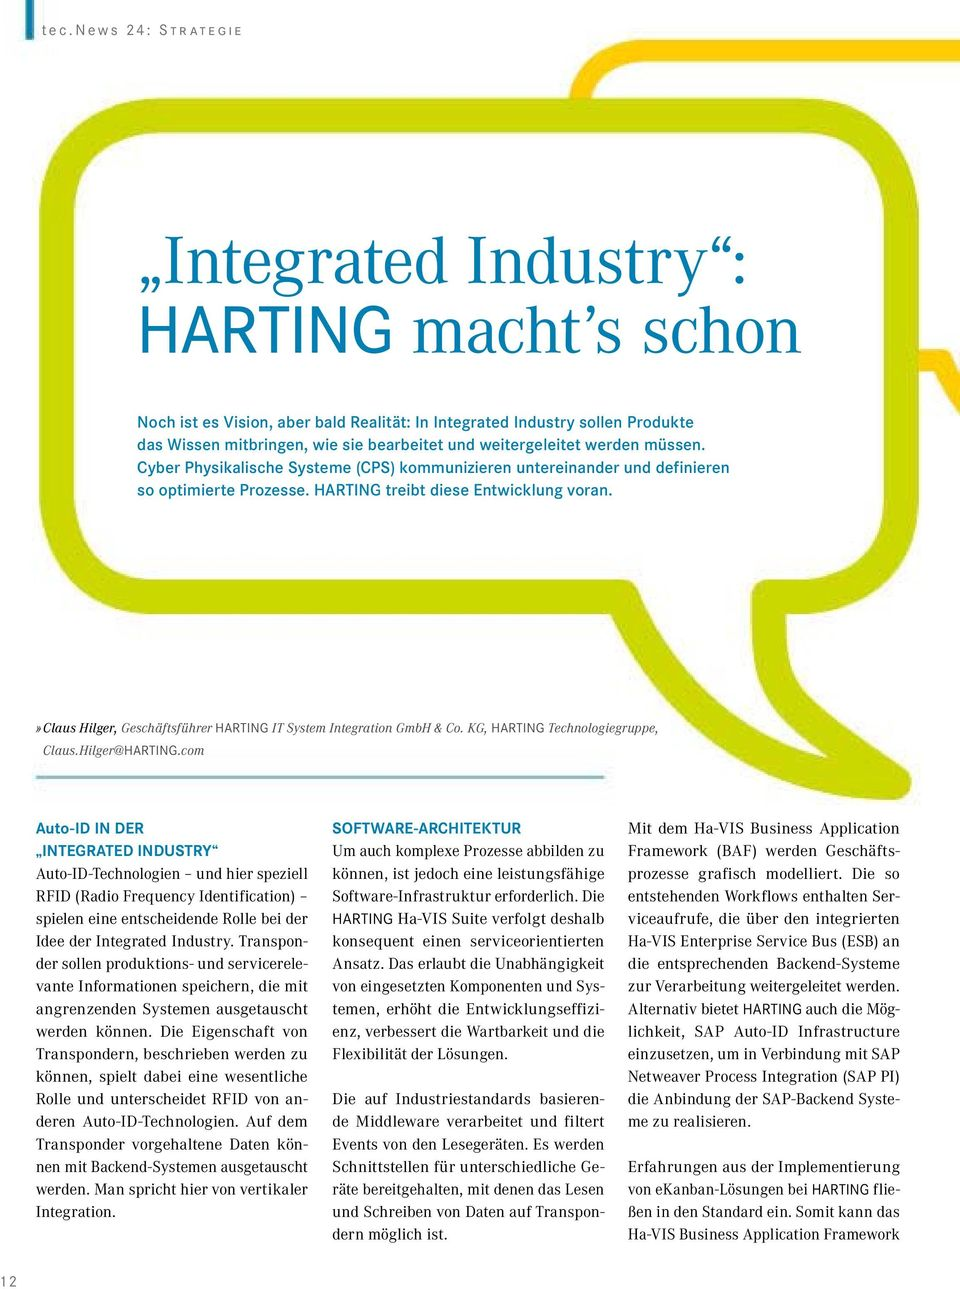 » Claus Hilger, Geschäftsführer HARTING IT System Integration GmbH & Co. KG, HARTING Technologiegruppe, Claus.Hilger@HARTING.